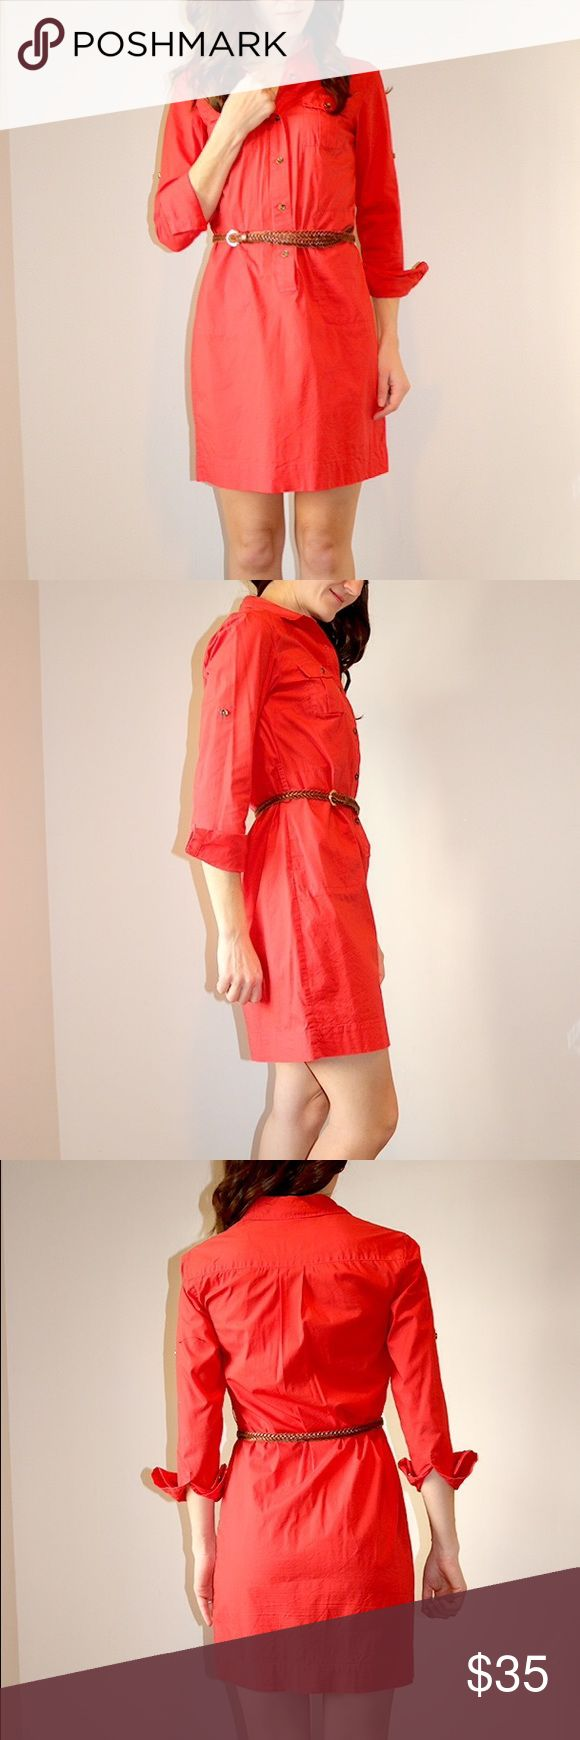 Banana Republic Red Shirt Dress Red shirt dress with pockets. Above knee. Tortoise shell buttons. Belt not included.  Full disclosure, small hole on front of dress. Banana Republic Dresses Long Sleeve